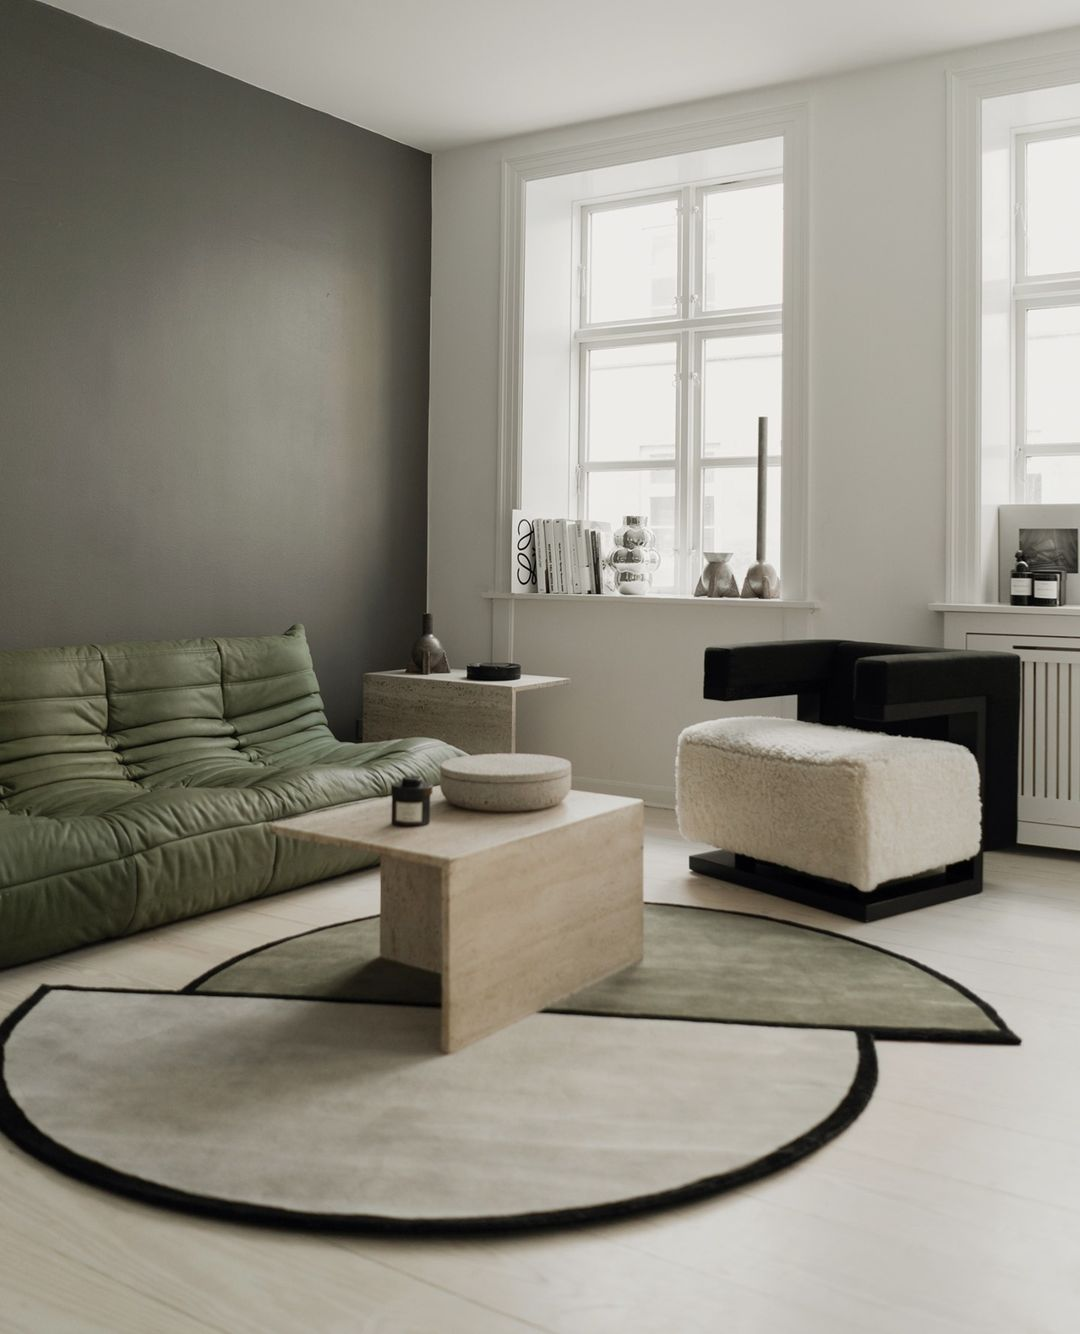 The AML 03 rug in contemporary apartment, shown with a green sofa and a black and white sheep fur armchair.